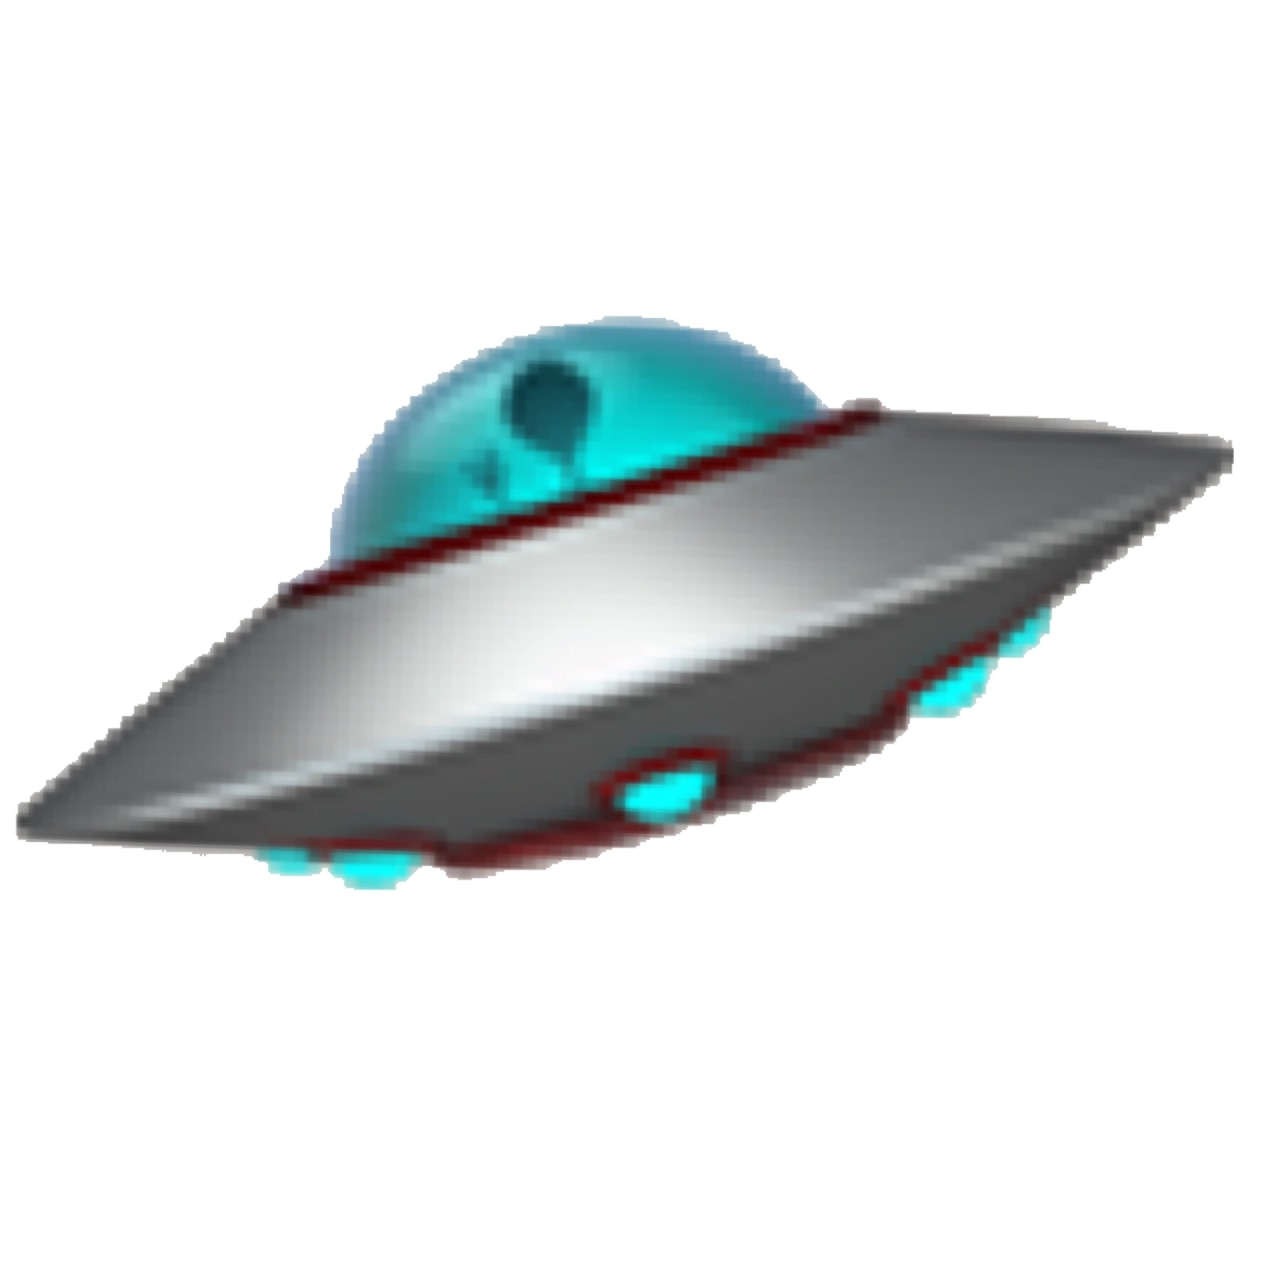 Ufo Png / Polish your personal project or design with these ufo transparent png images, make it even more personalized and more.